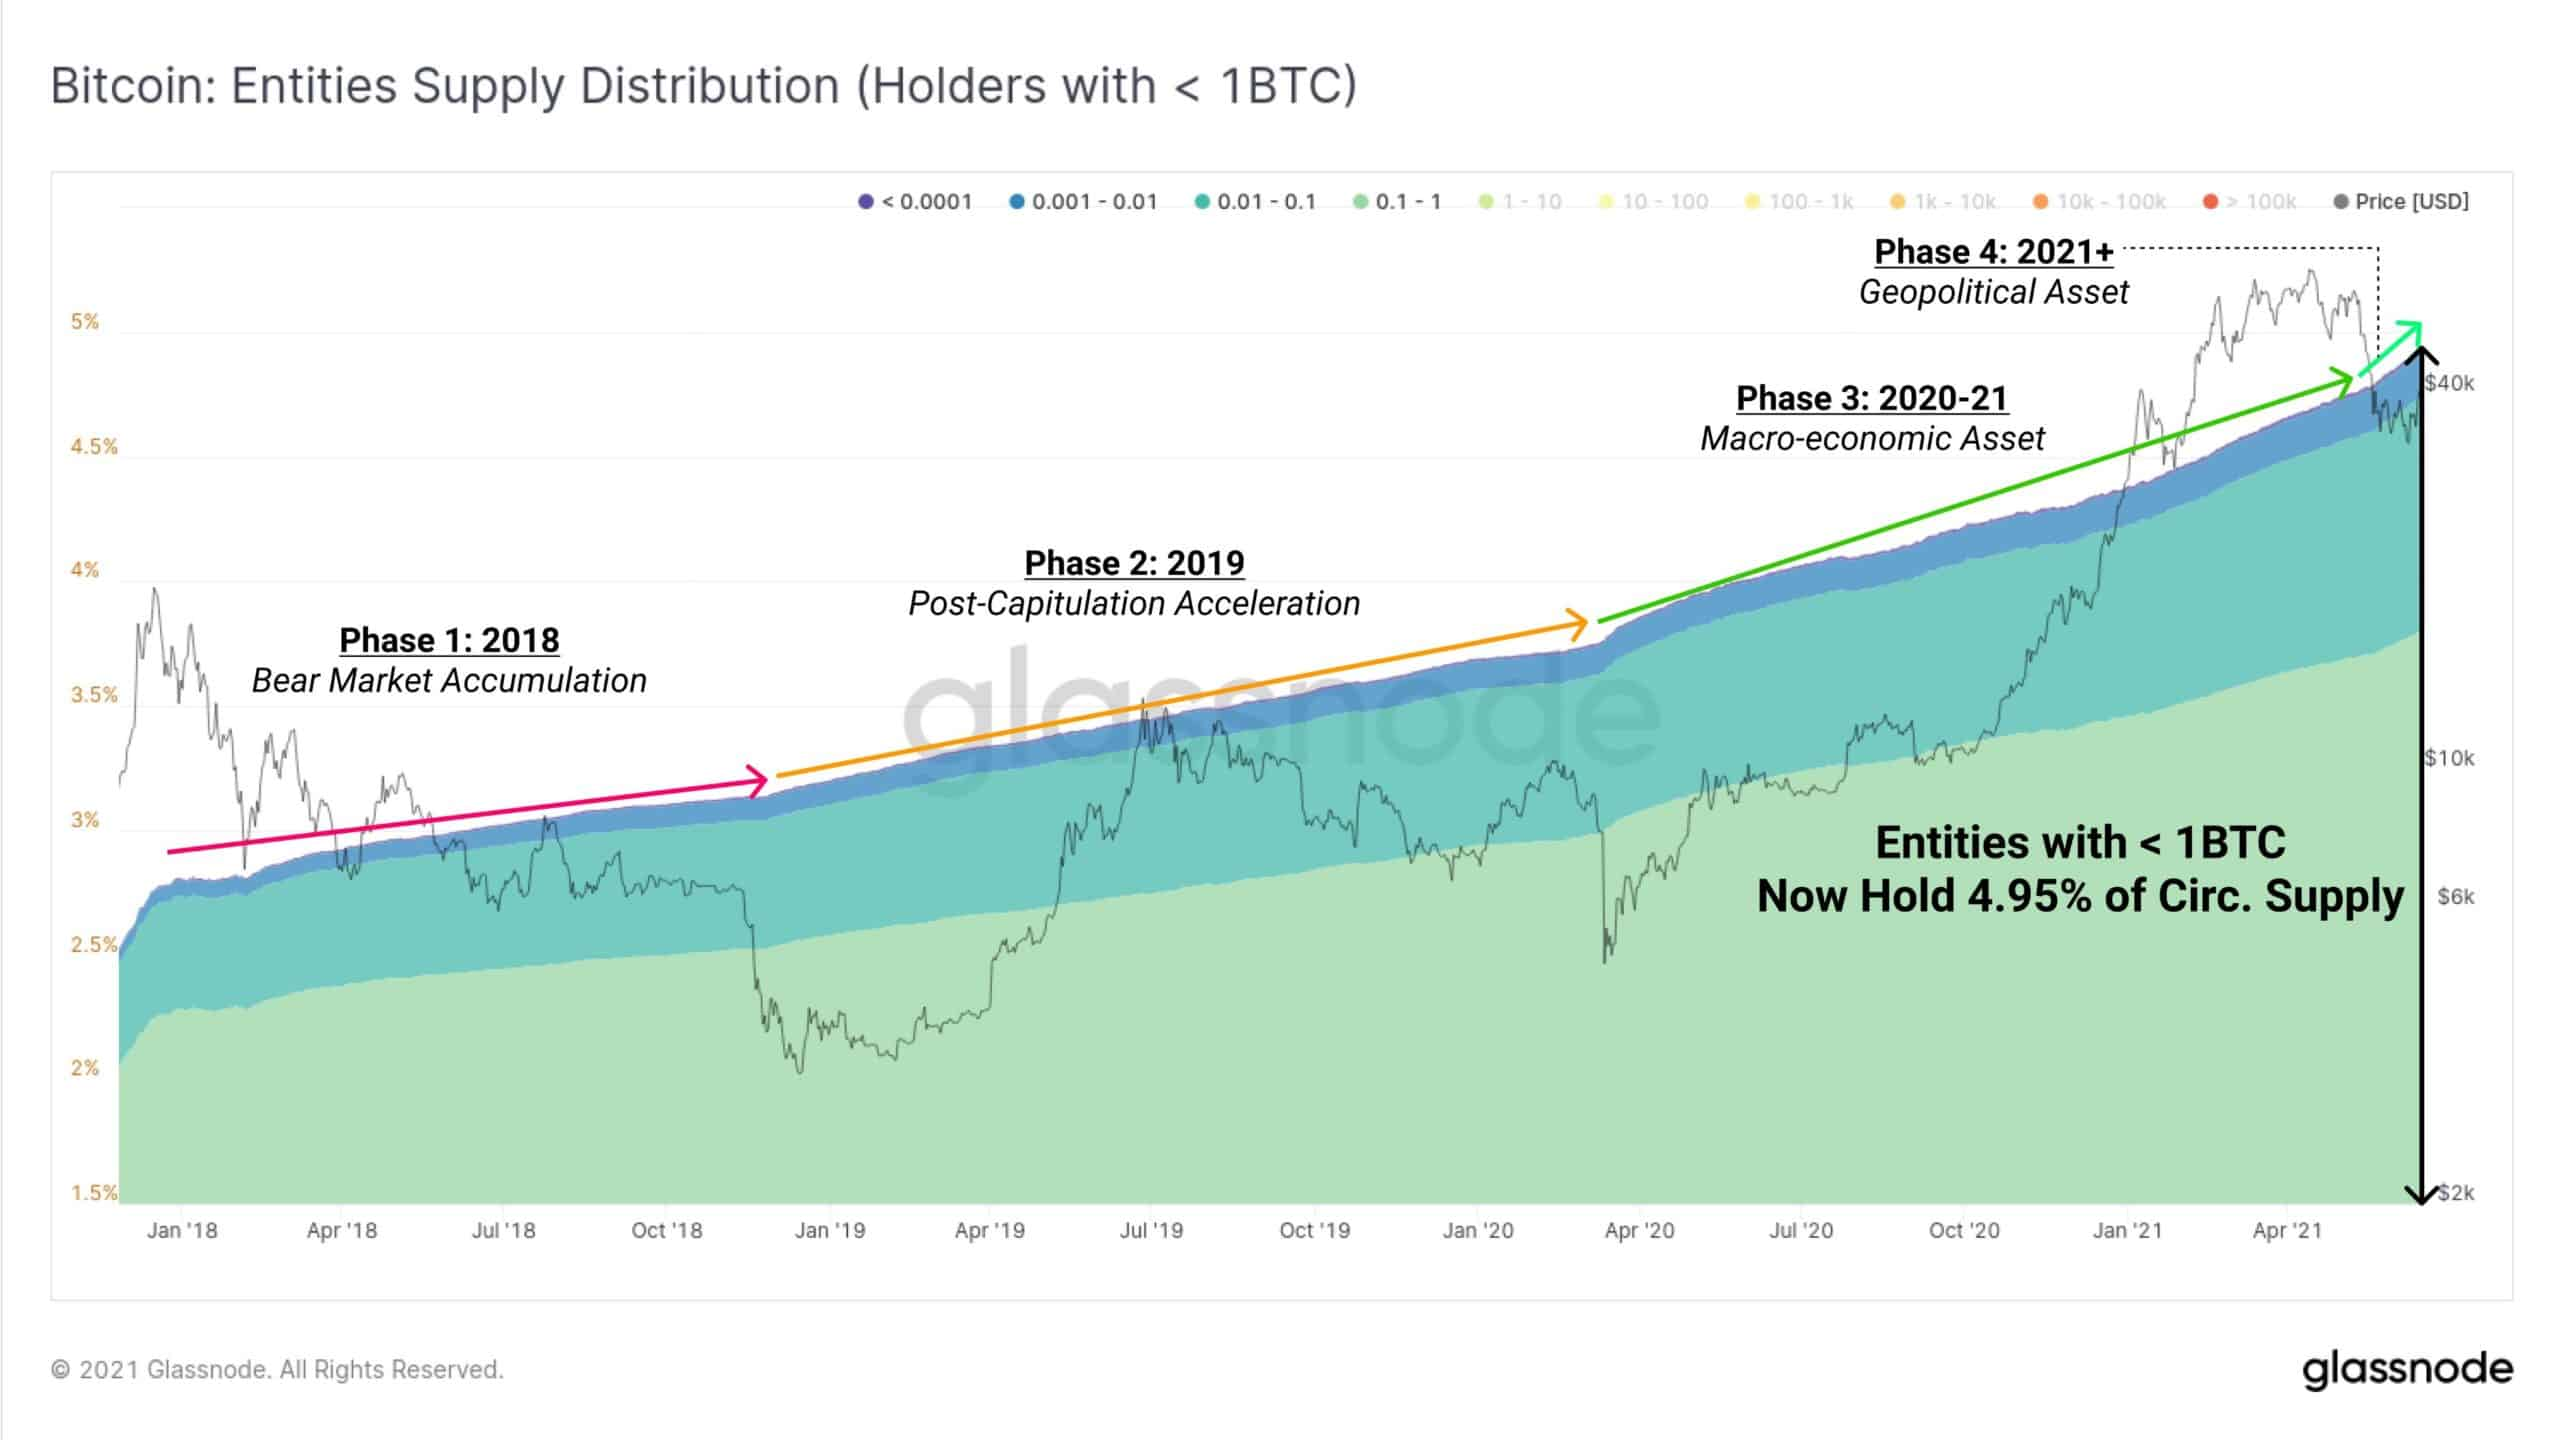 Bitcoin Wallets With Less Than 1 BTC. Source: Glassnode